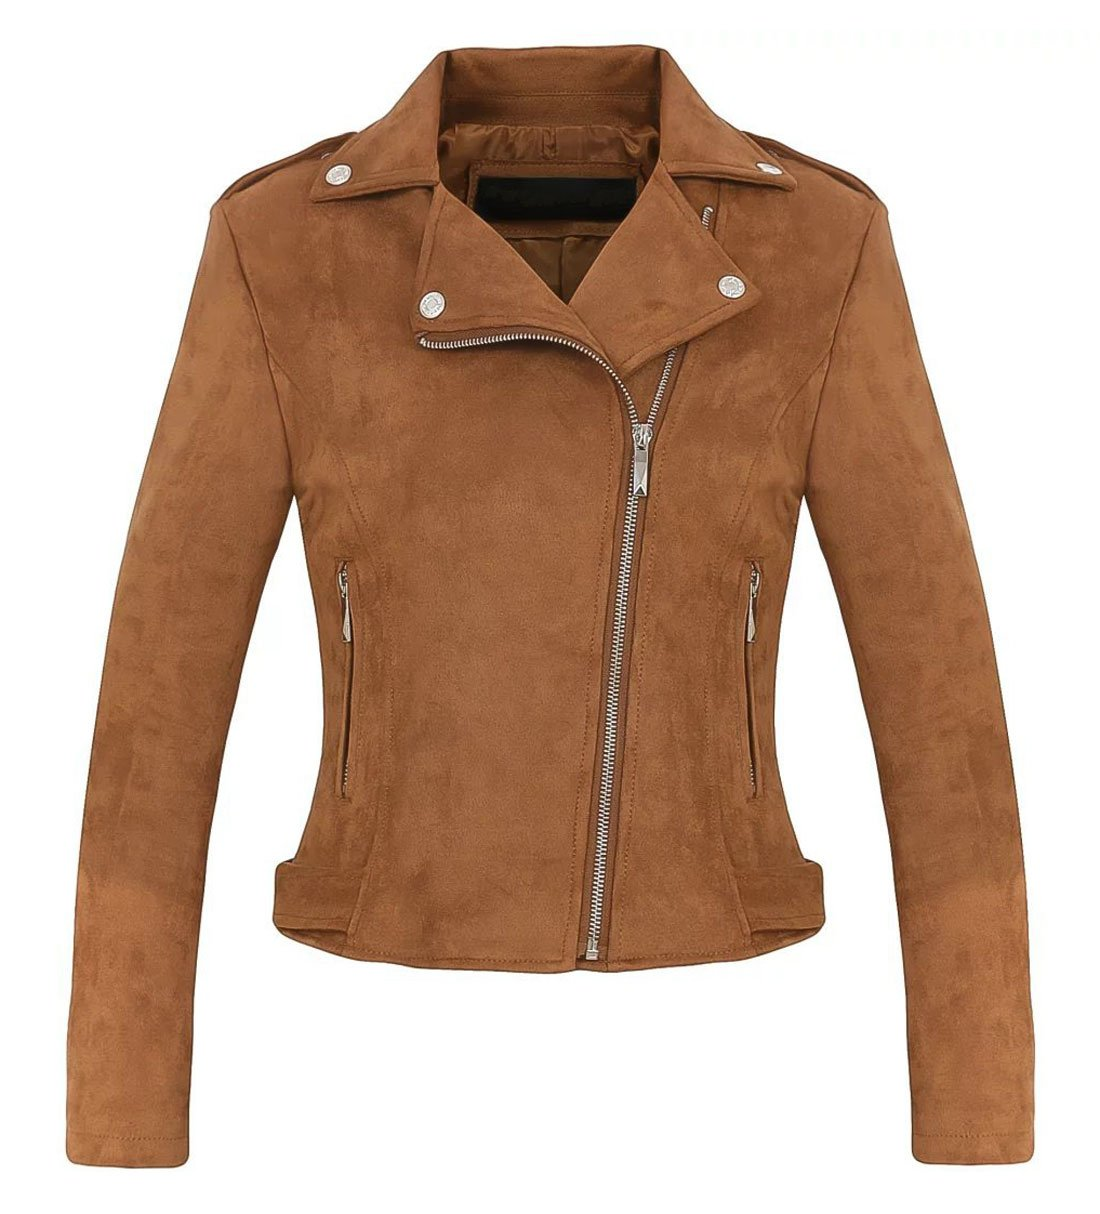 Chartou Women's Stylish Notched Collar Oblique Zip Suede Leather Moto Jacket (Small, Coffee) by Chartou